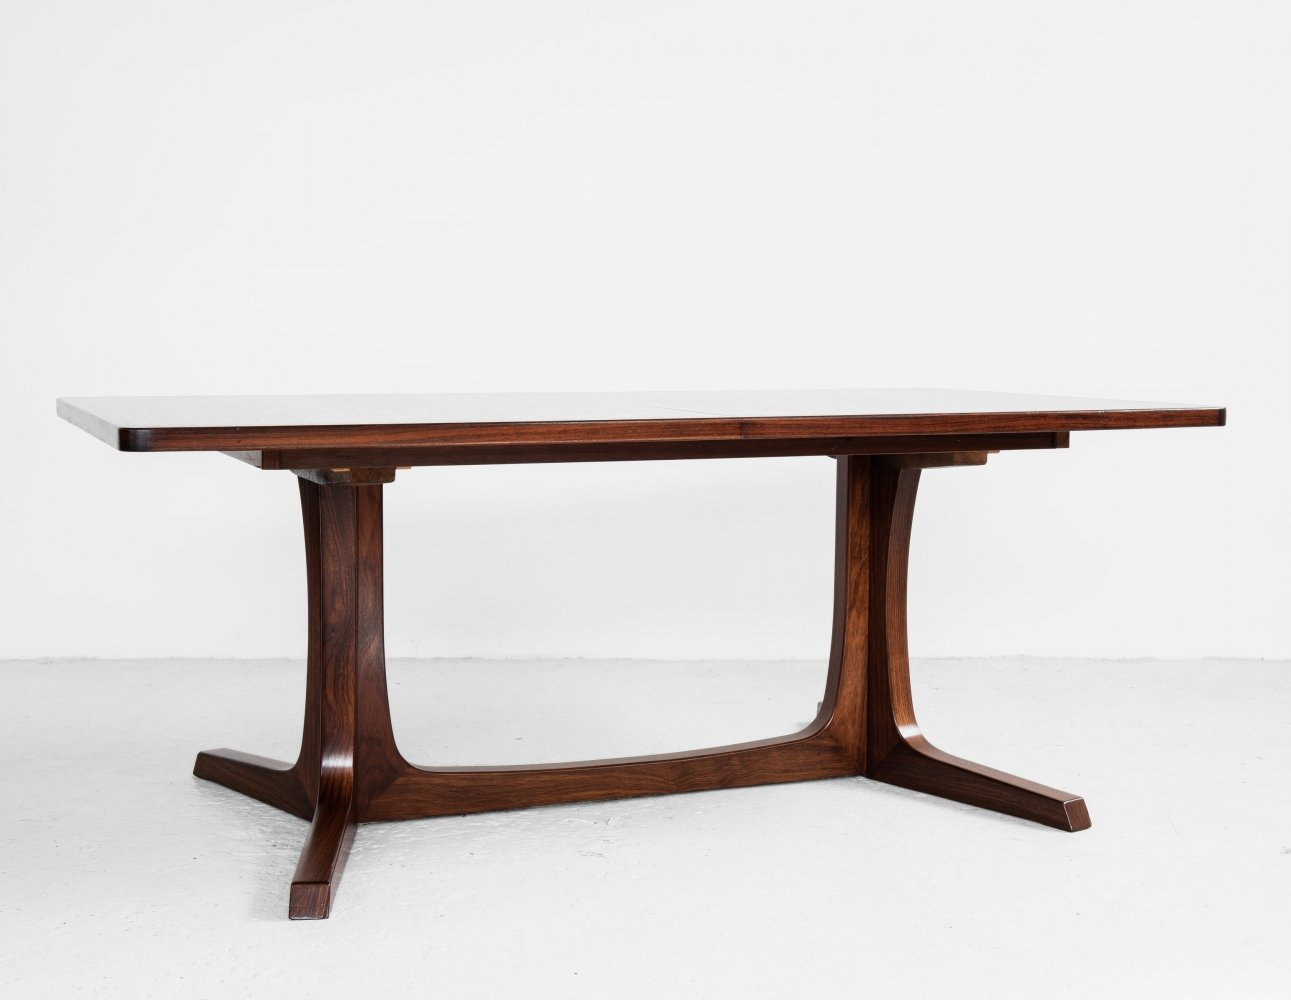 XL Danish rectangular dining table in rosewood by Gudme Møbelfabrik, 1960s